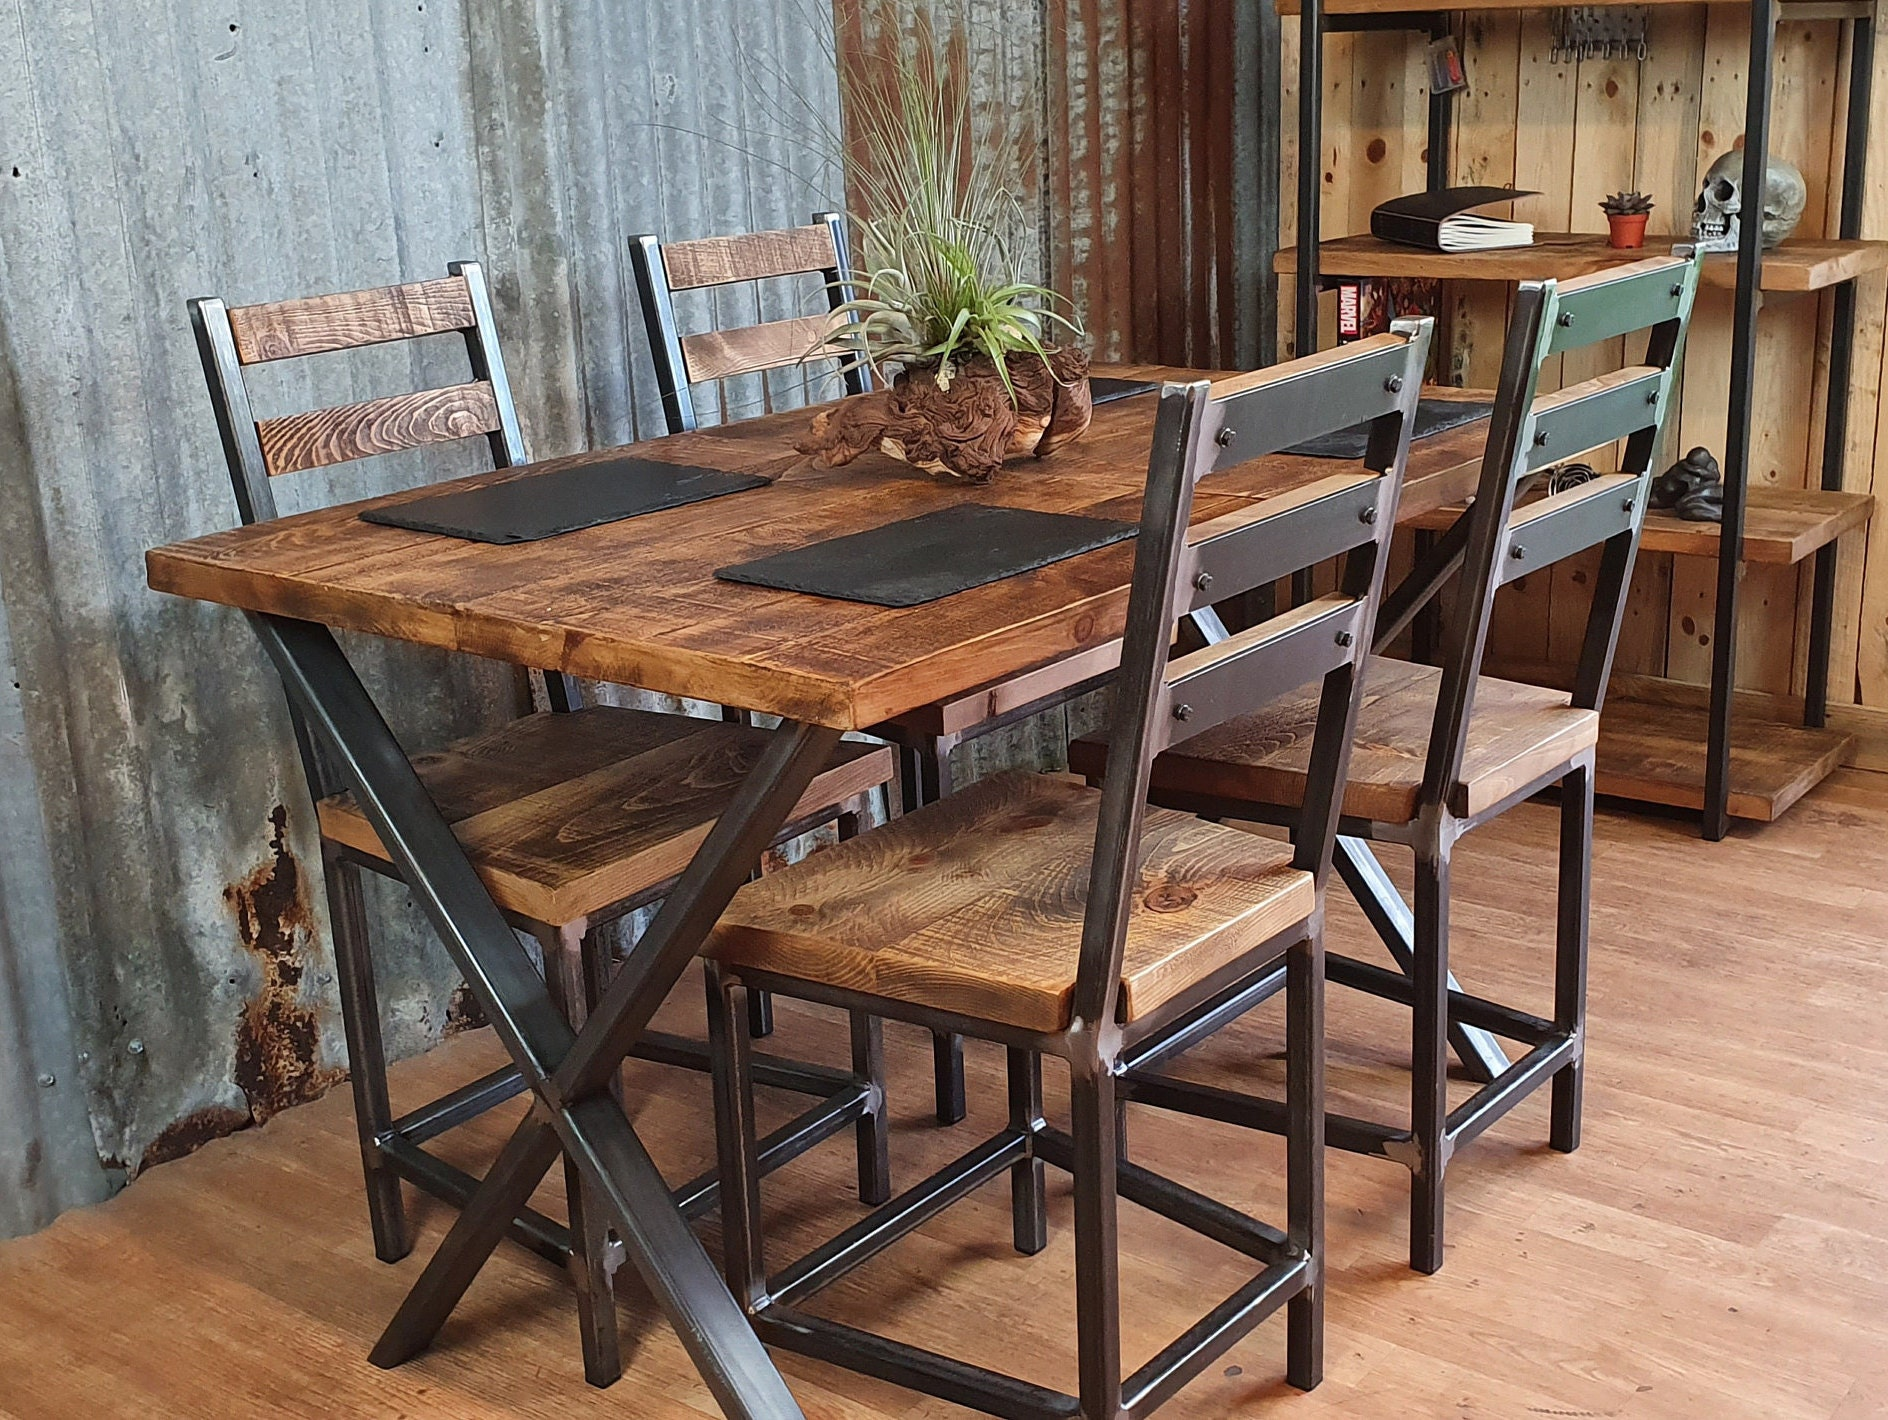 Extendable Dining Table With X Style, Industrial Look Dining Room Chairs